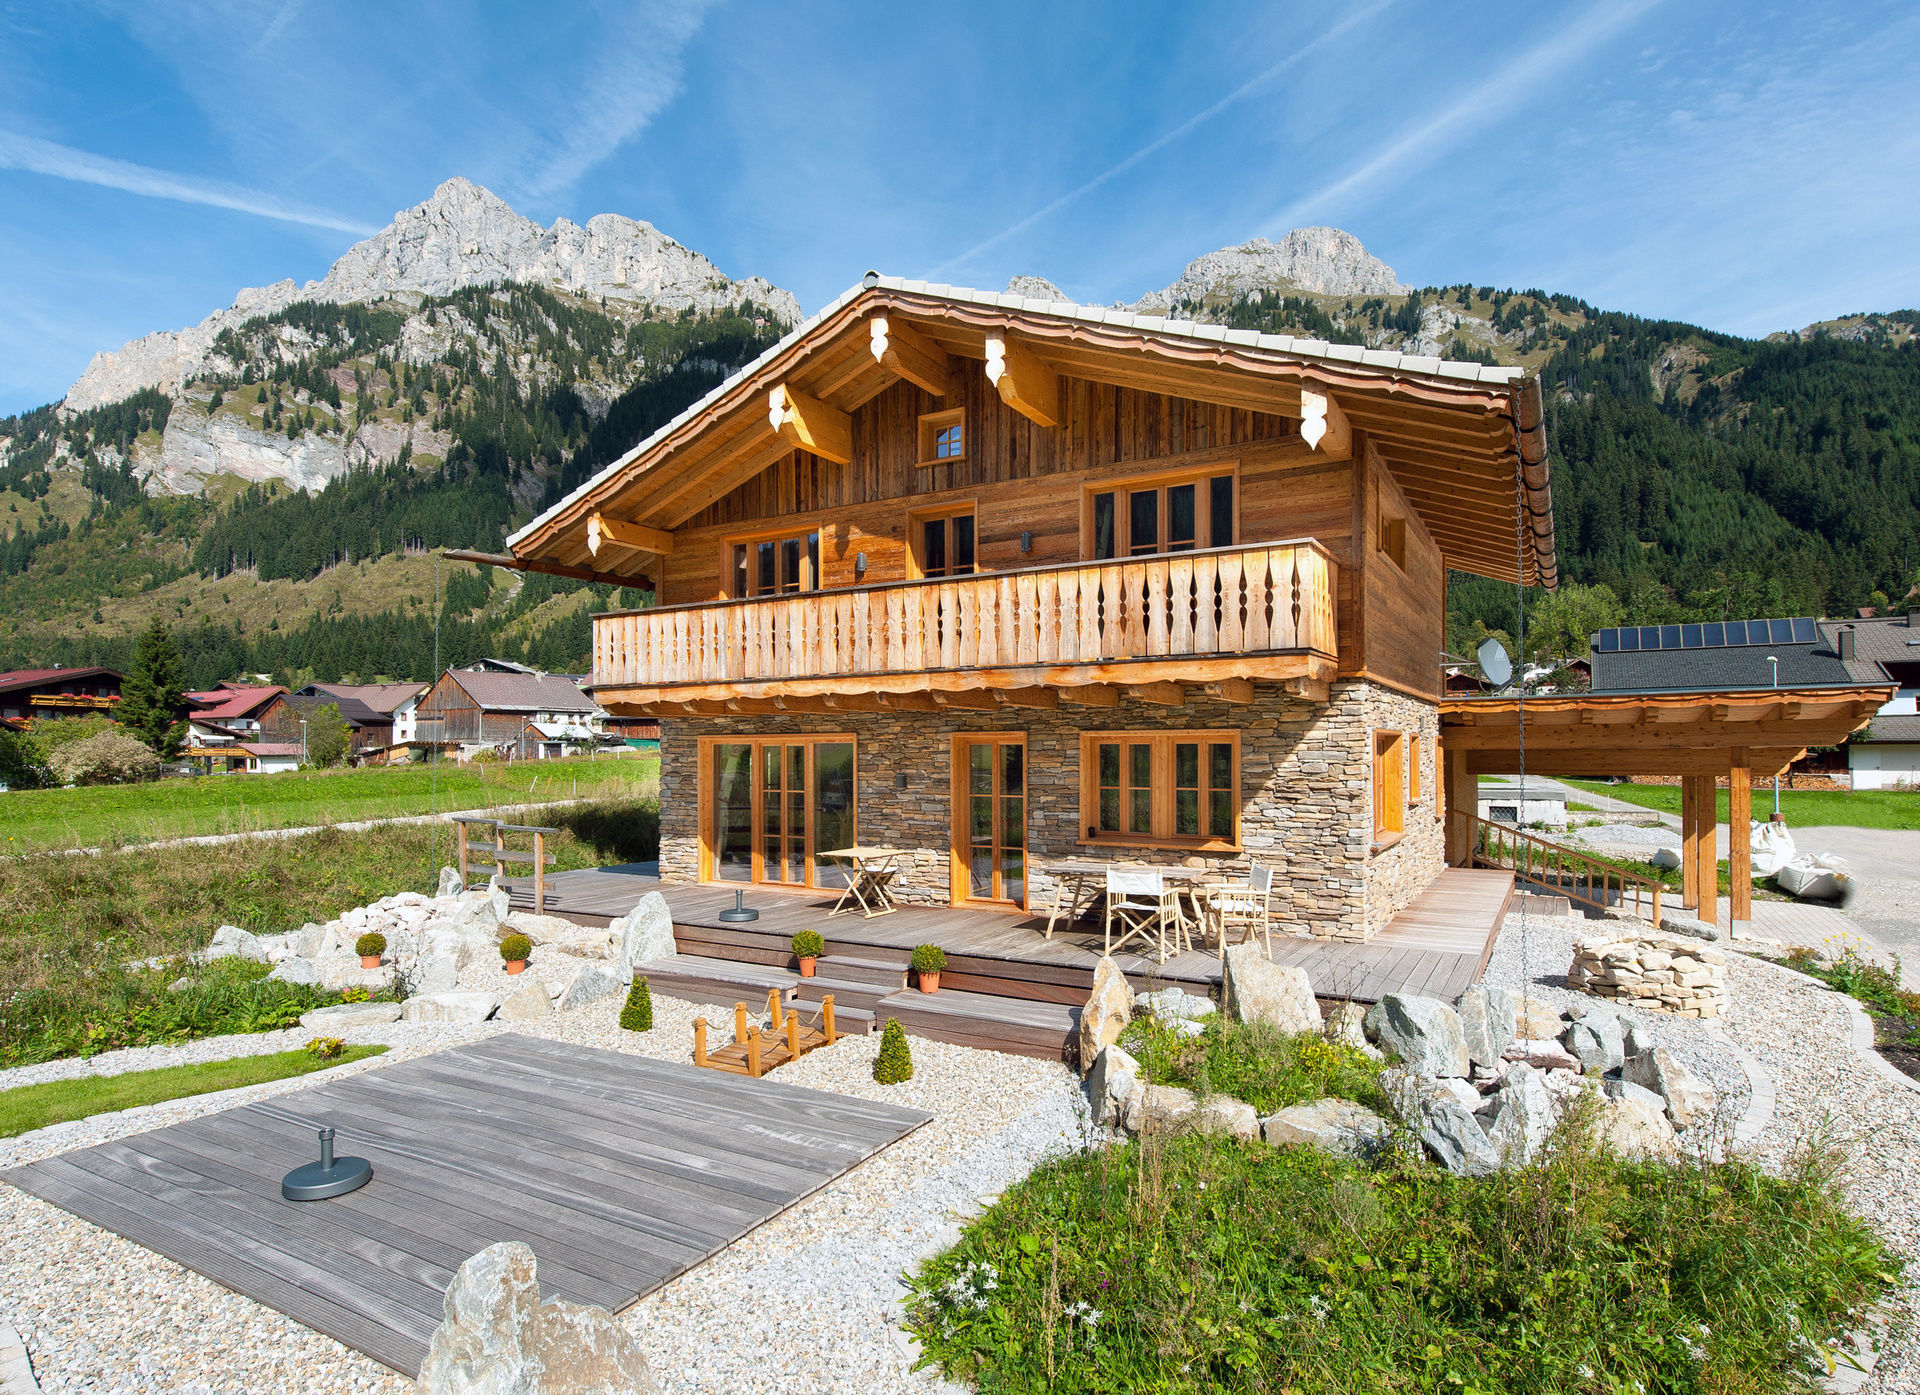 bilderbuch chalet grand fl h tannheimer tal luxus chalets tirol ferienh user allg u. Black Bedroom Furniture Sets. Home Design Ideas